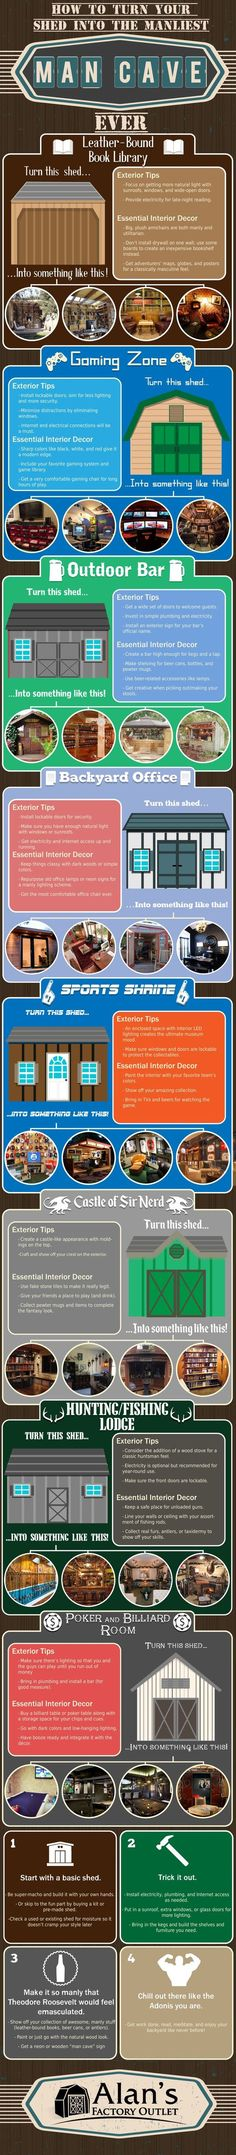 Turn Your Shed Into The Perfect Man Cave #Infographic #HomeImprovement… http://www.mancavegenius.org/